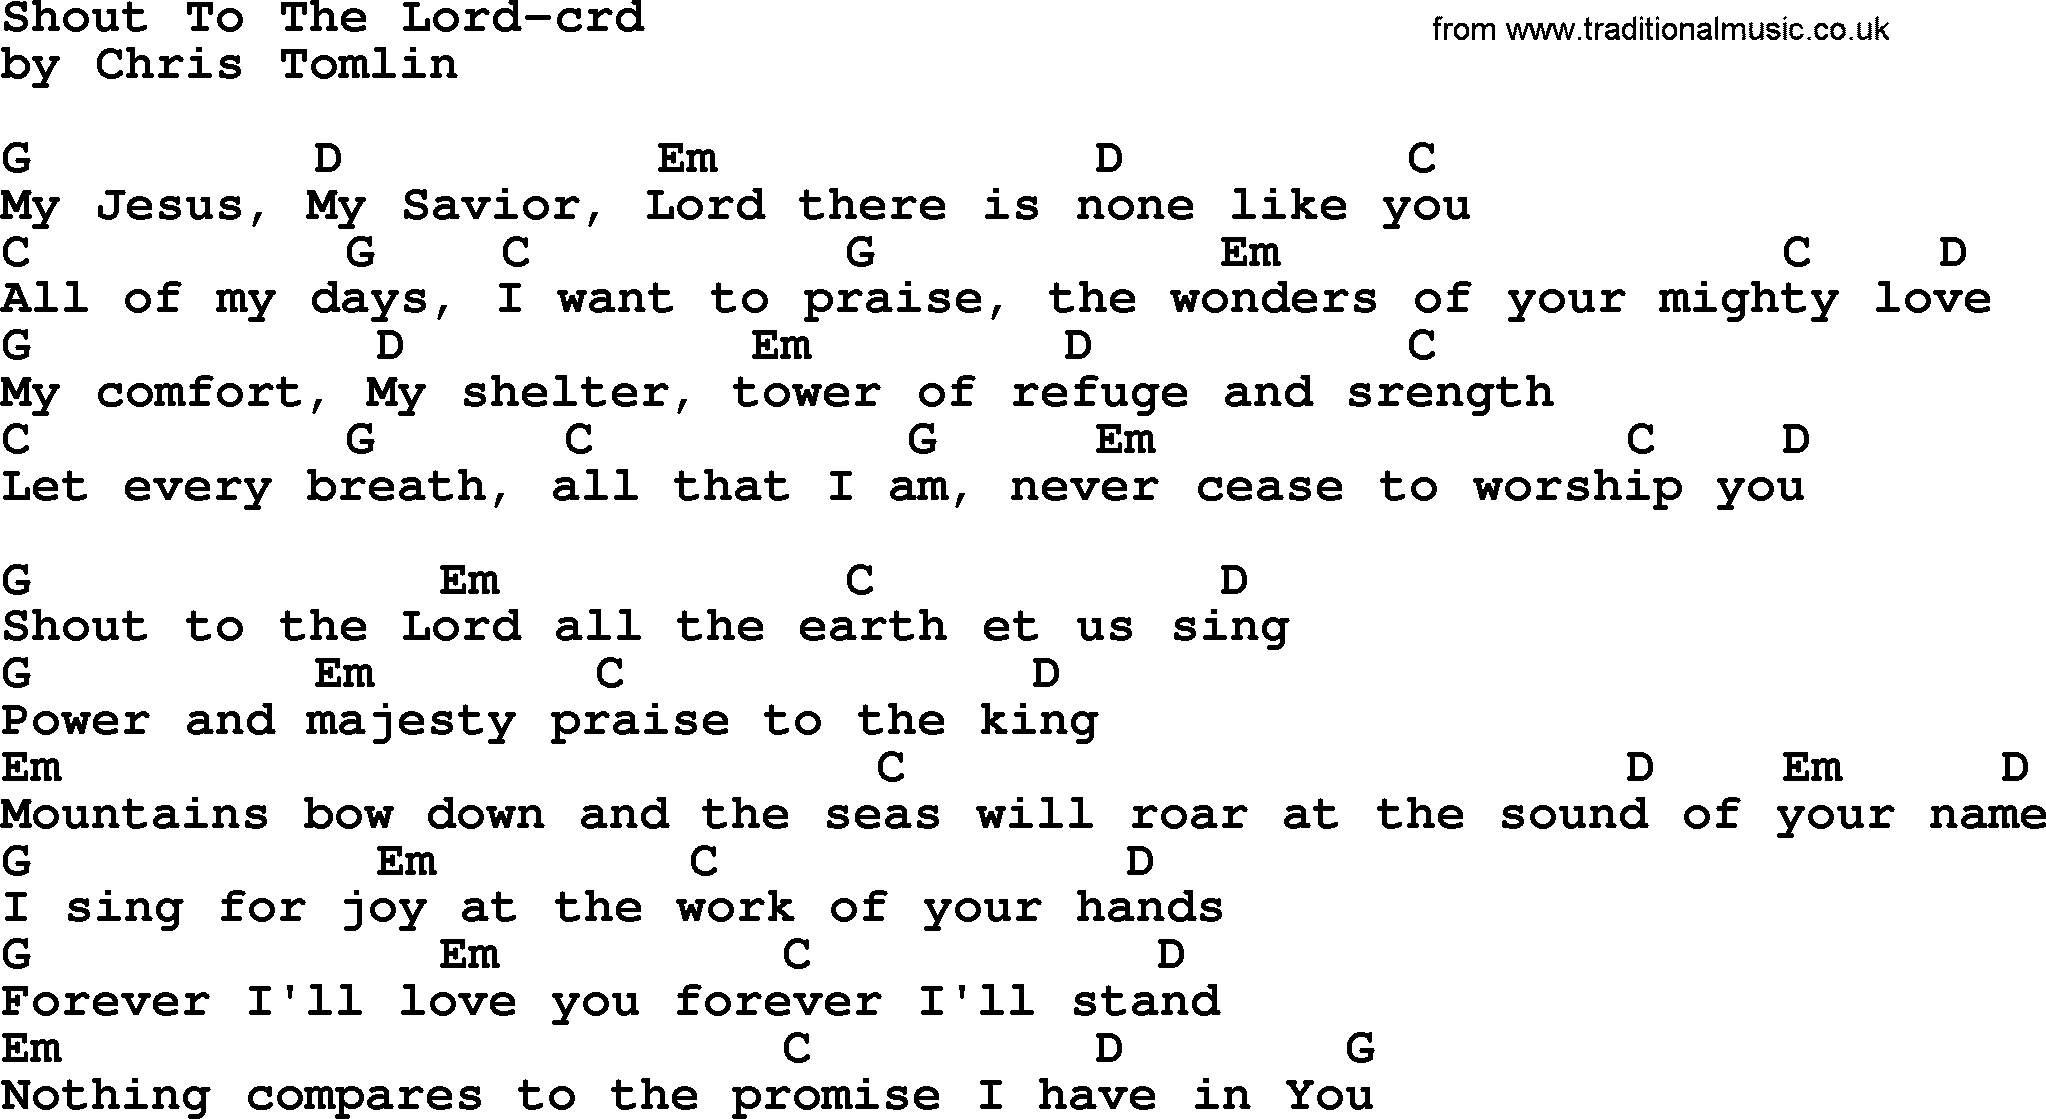 Shout To The Lord Chords Top 500 Hymn Shout To The Lord Lyrics Chords And Pdf